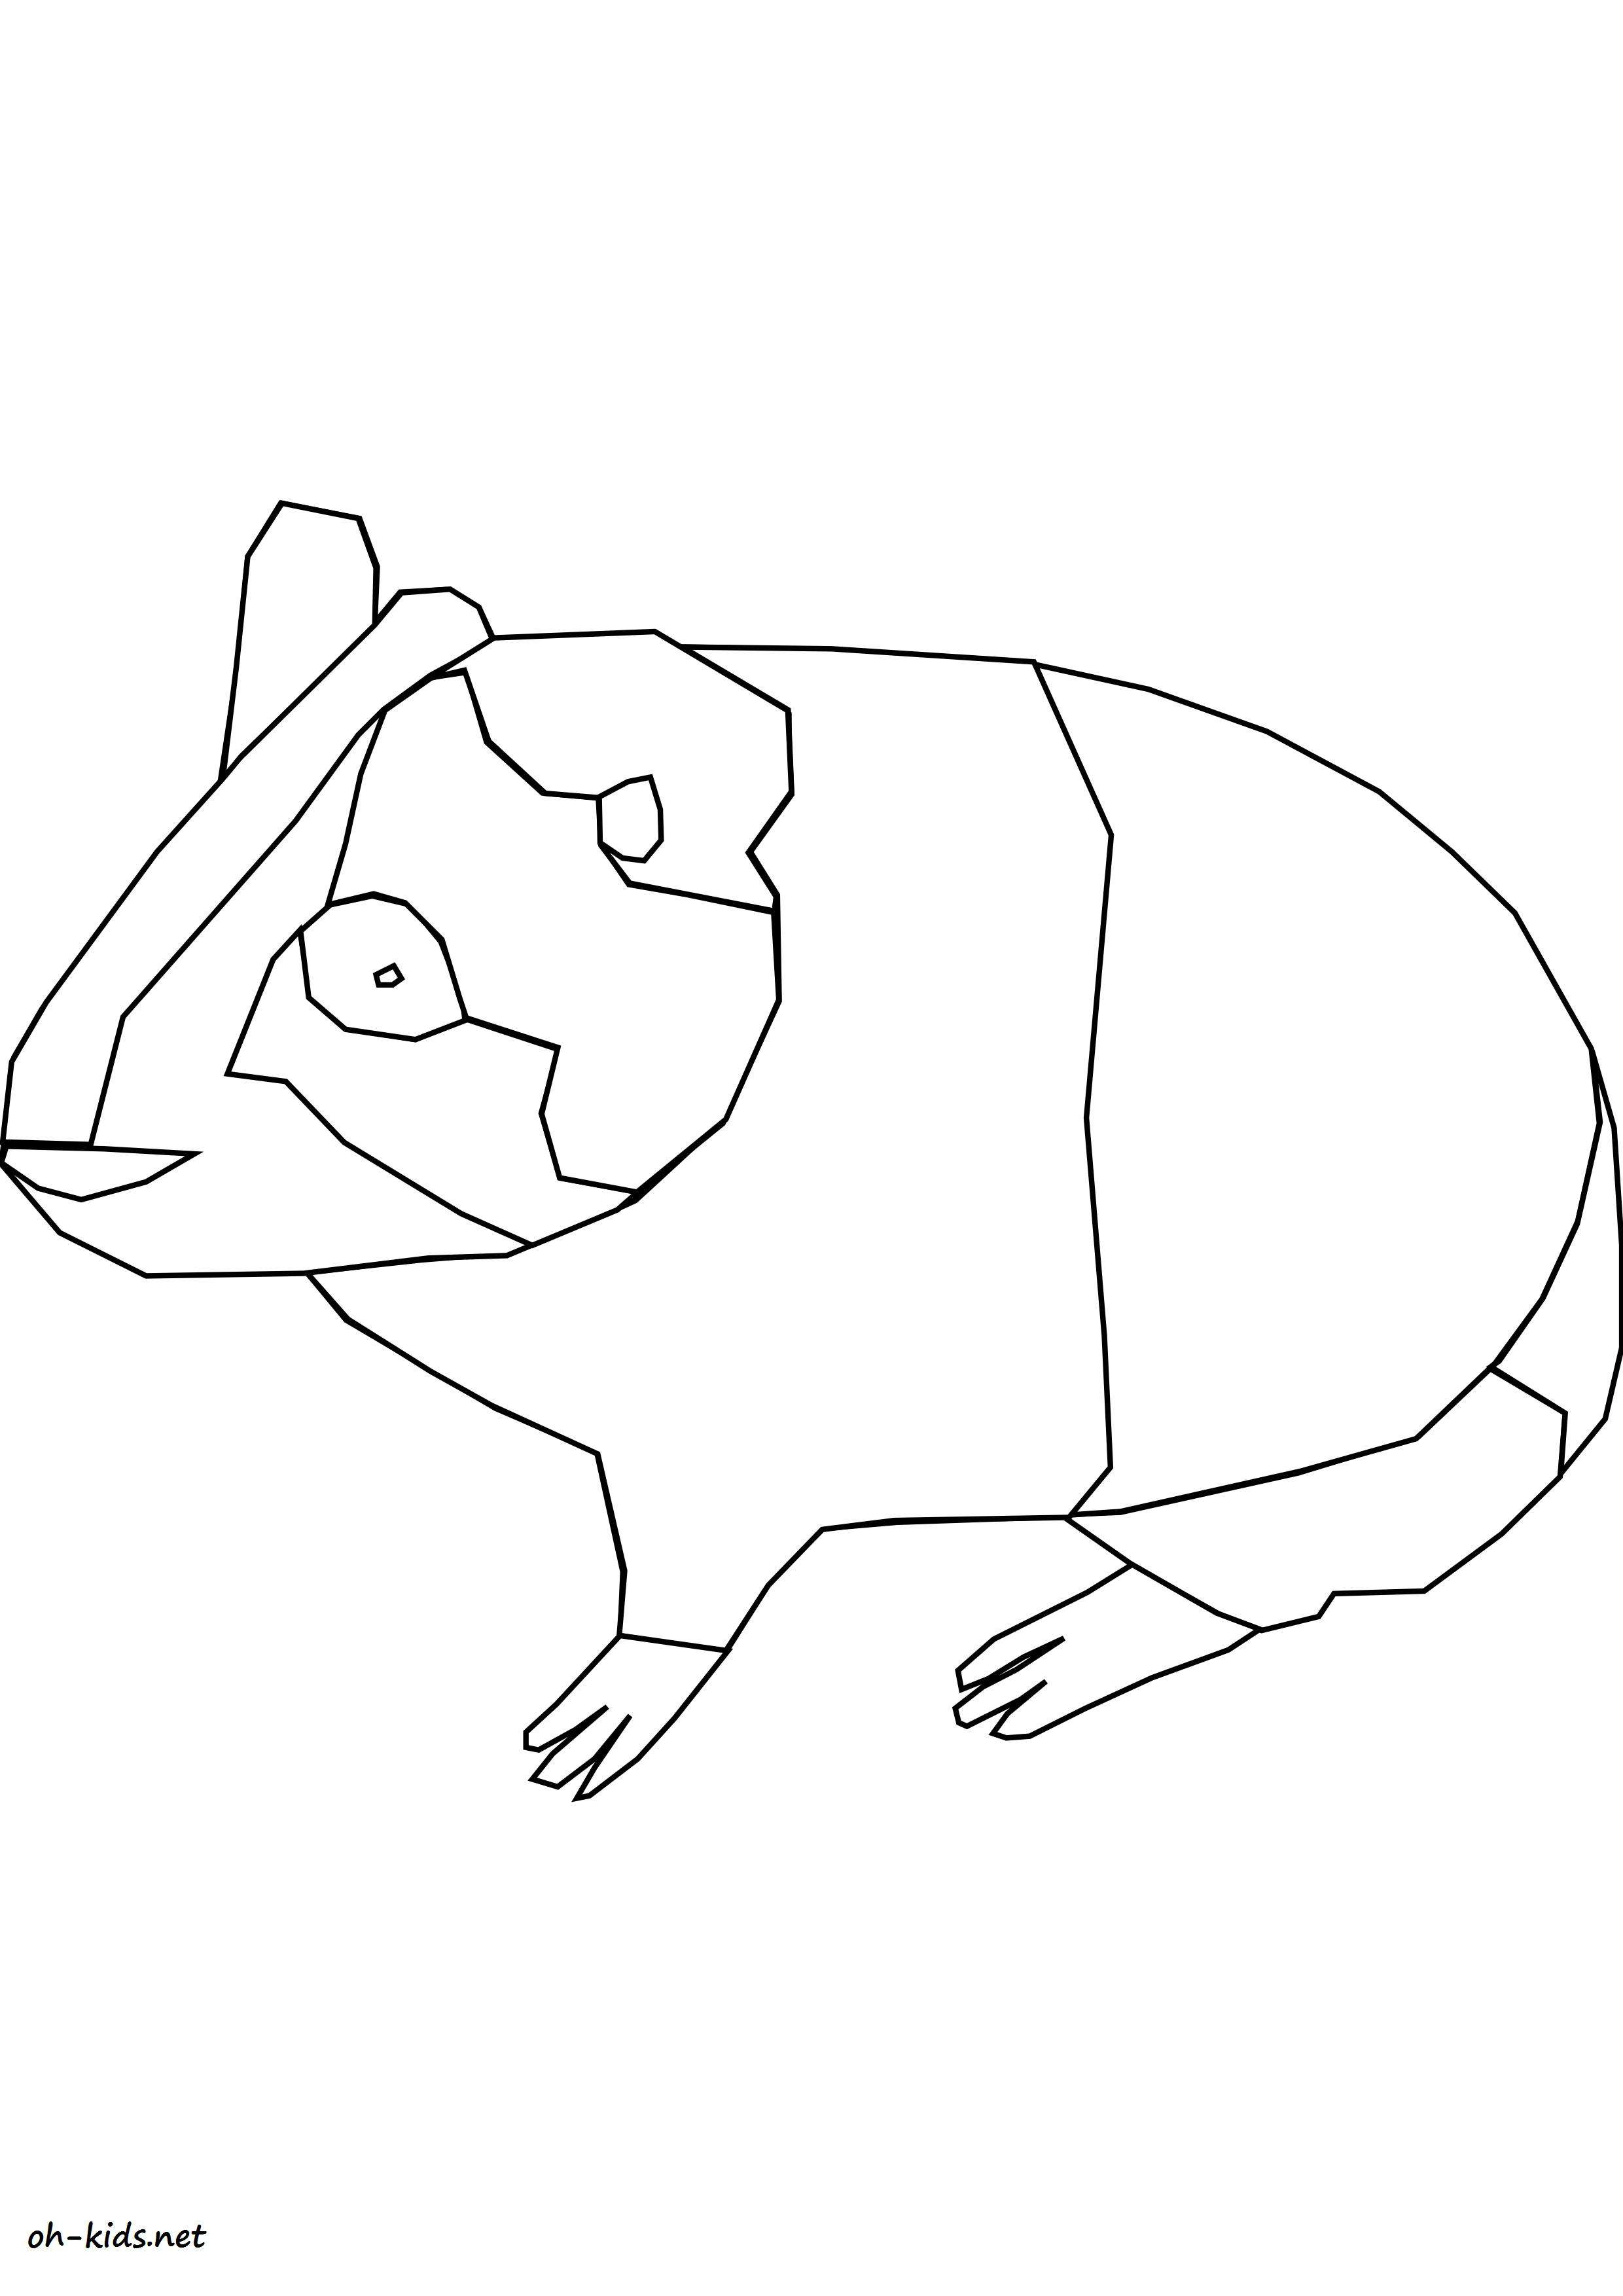 Coloriage animaux page 4 of 84 oh kids fr - Hamster gratuit ...